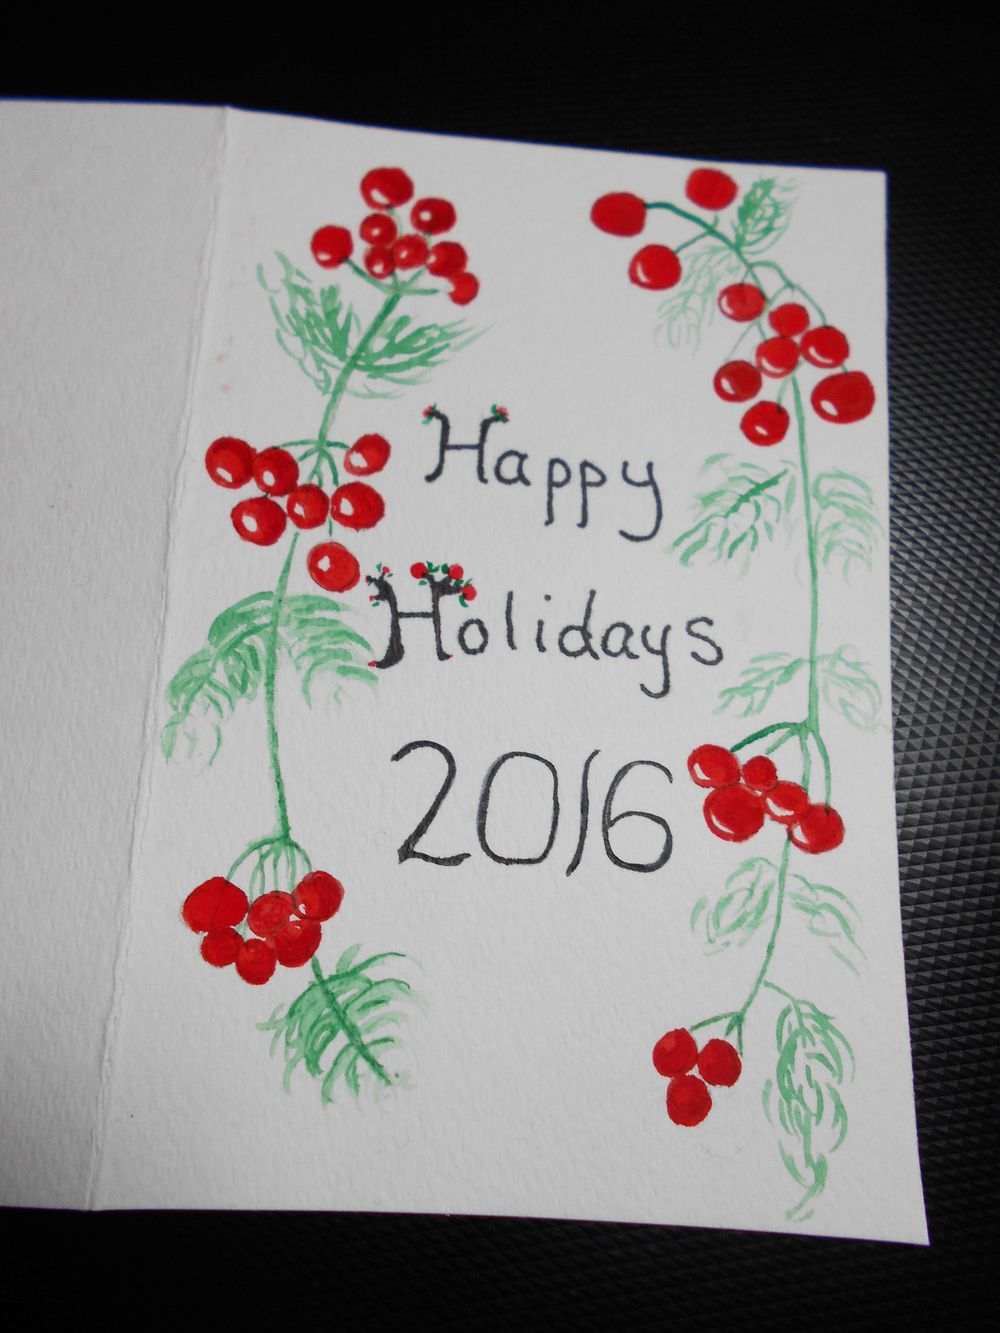 My holiday card - image 1 - student project